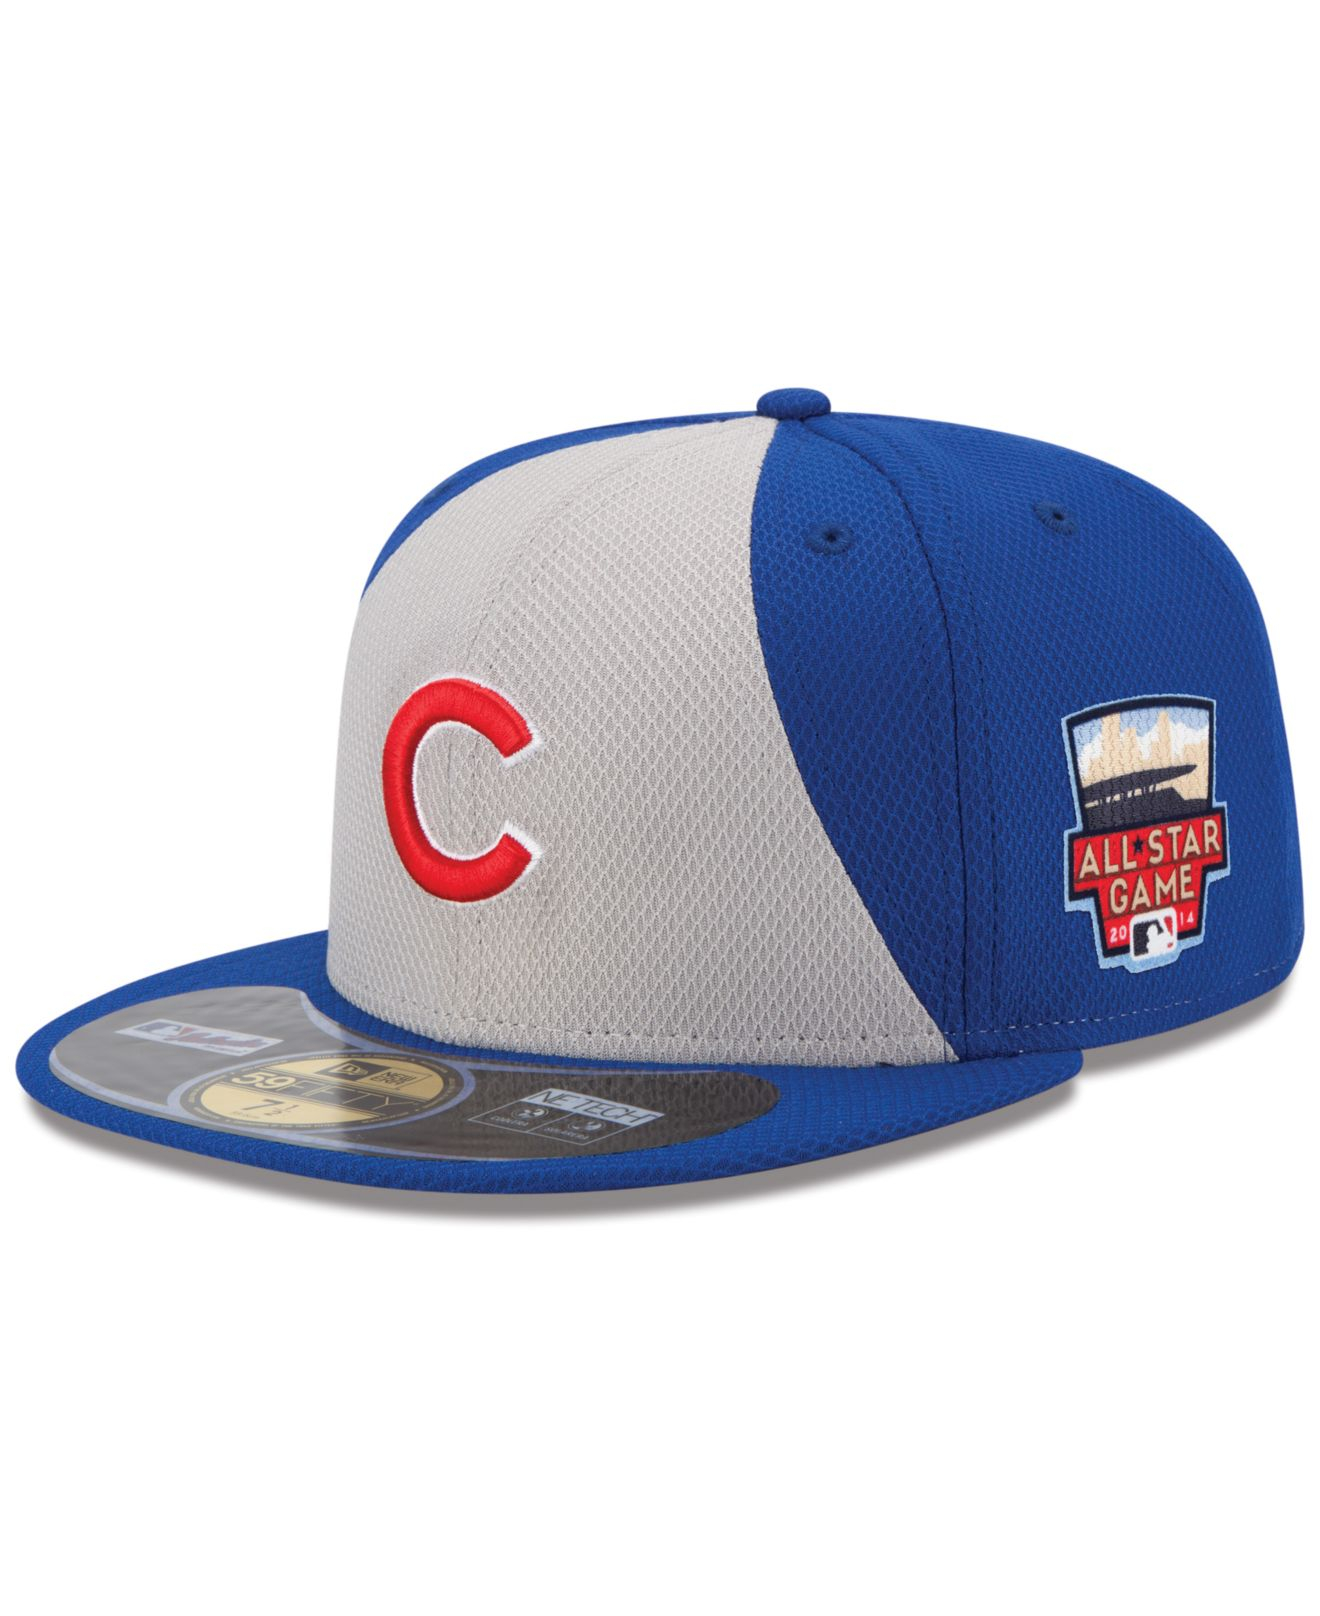 online retailer af21b f6bd4 ... all star game patch 59fifty cap lids 20071 69b90  coupon for gallery.  previously sold at macys mens new era 59fifty 24a92 92c13